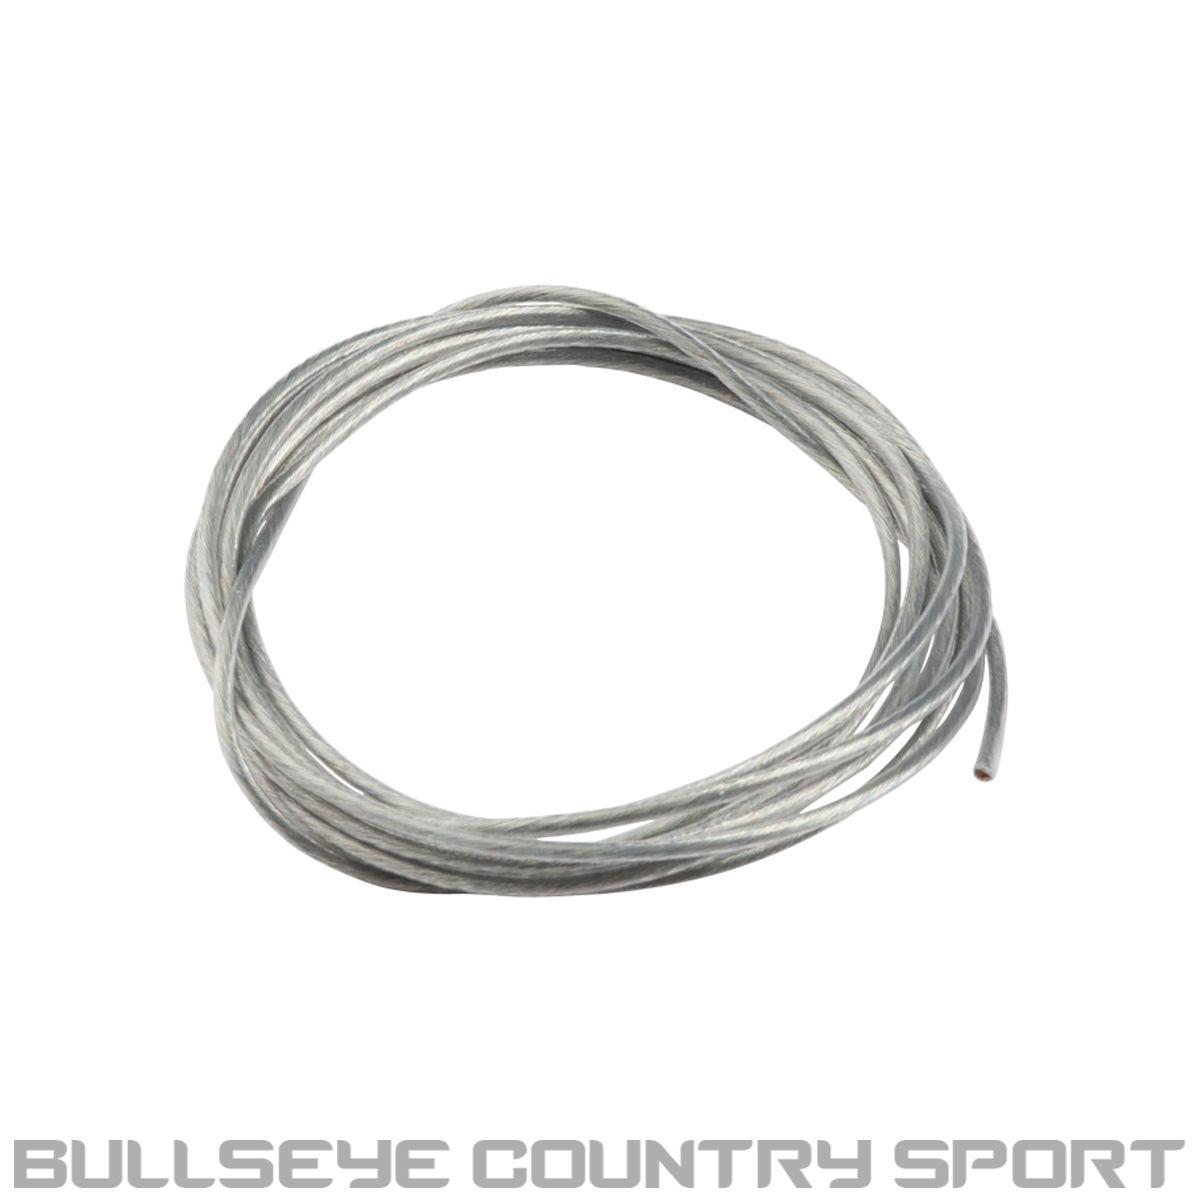 Ultimate Airsoft Silver Plated Wire 2 Meters